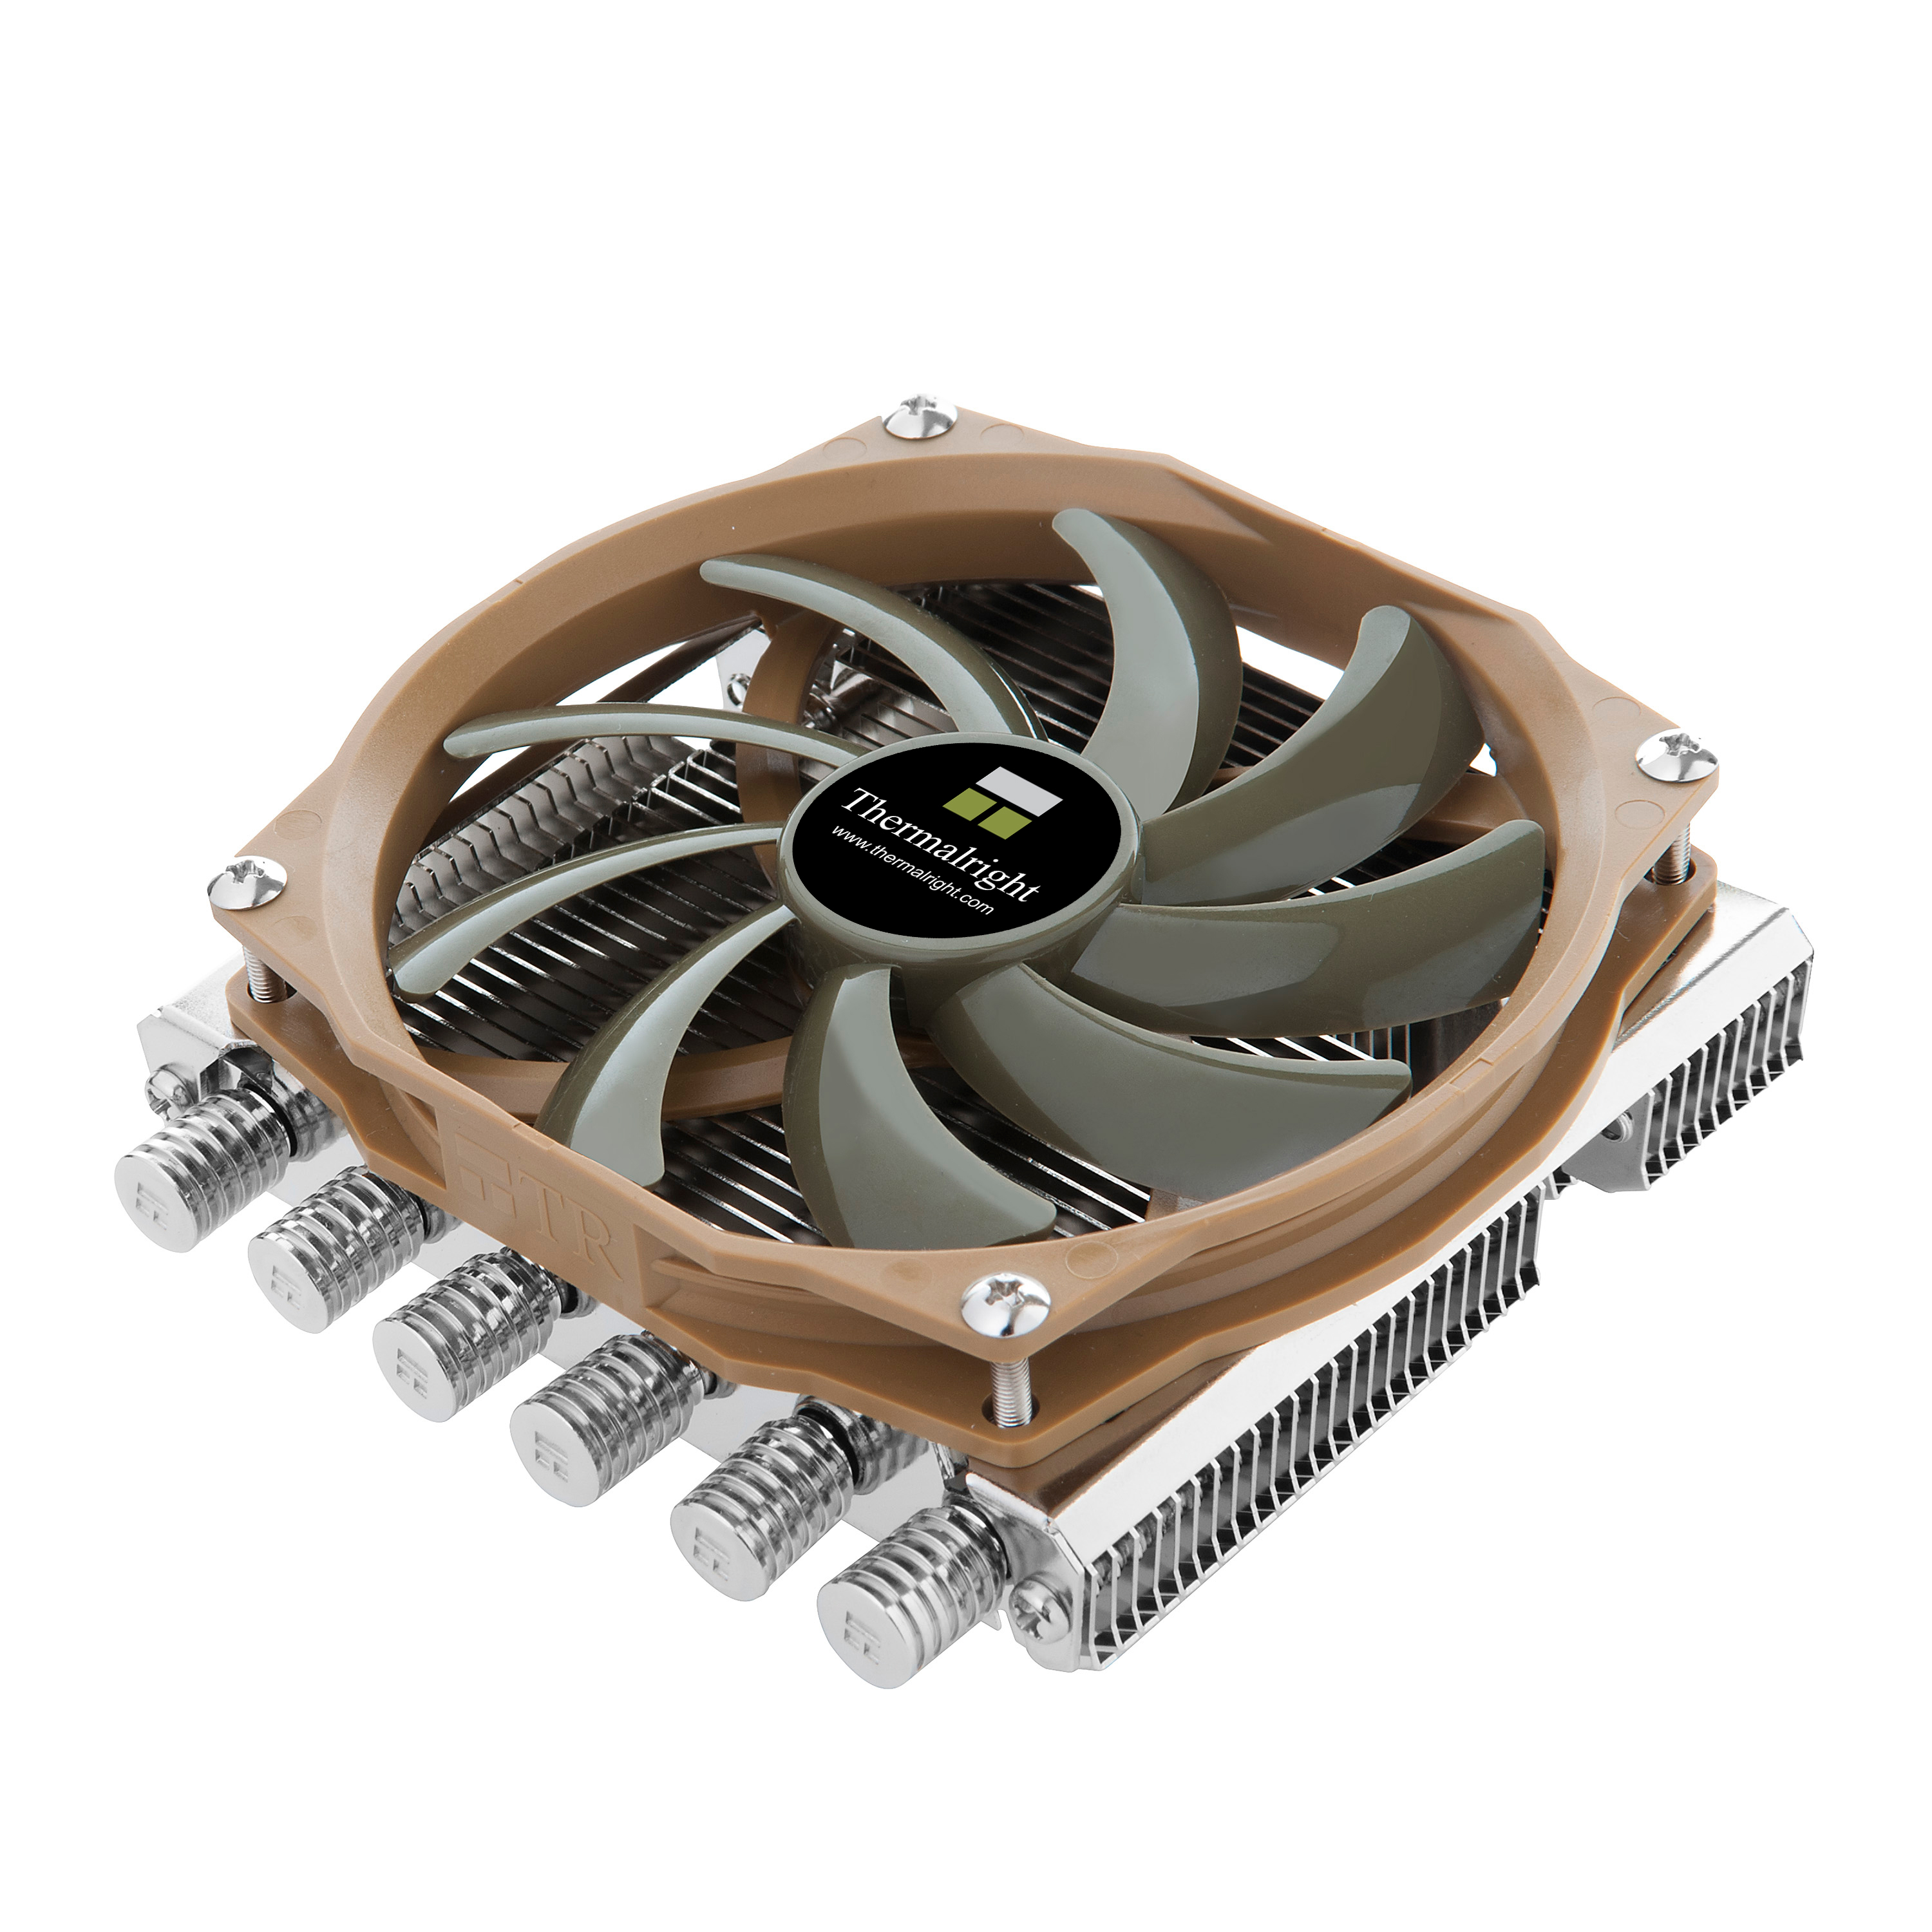 Copper Designed for ITX and HTPC Systems. Thermalright AXP-100